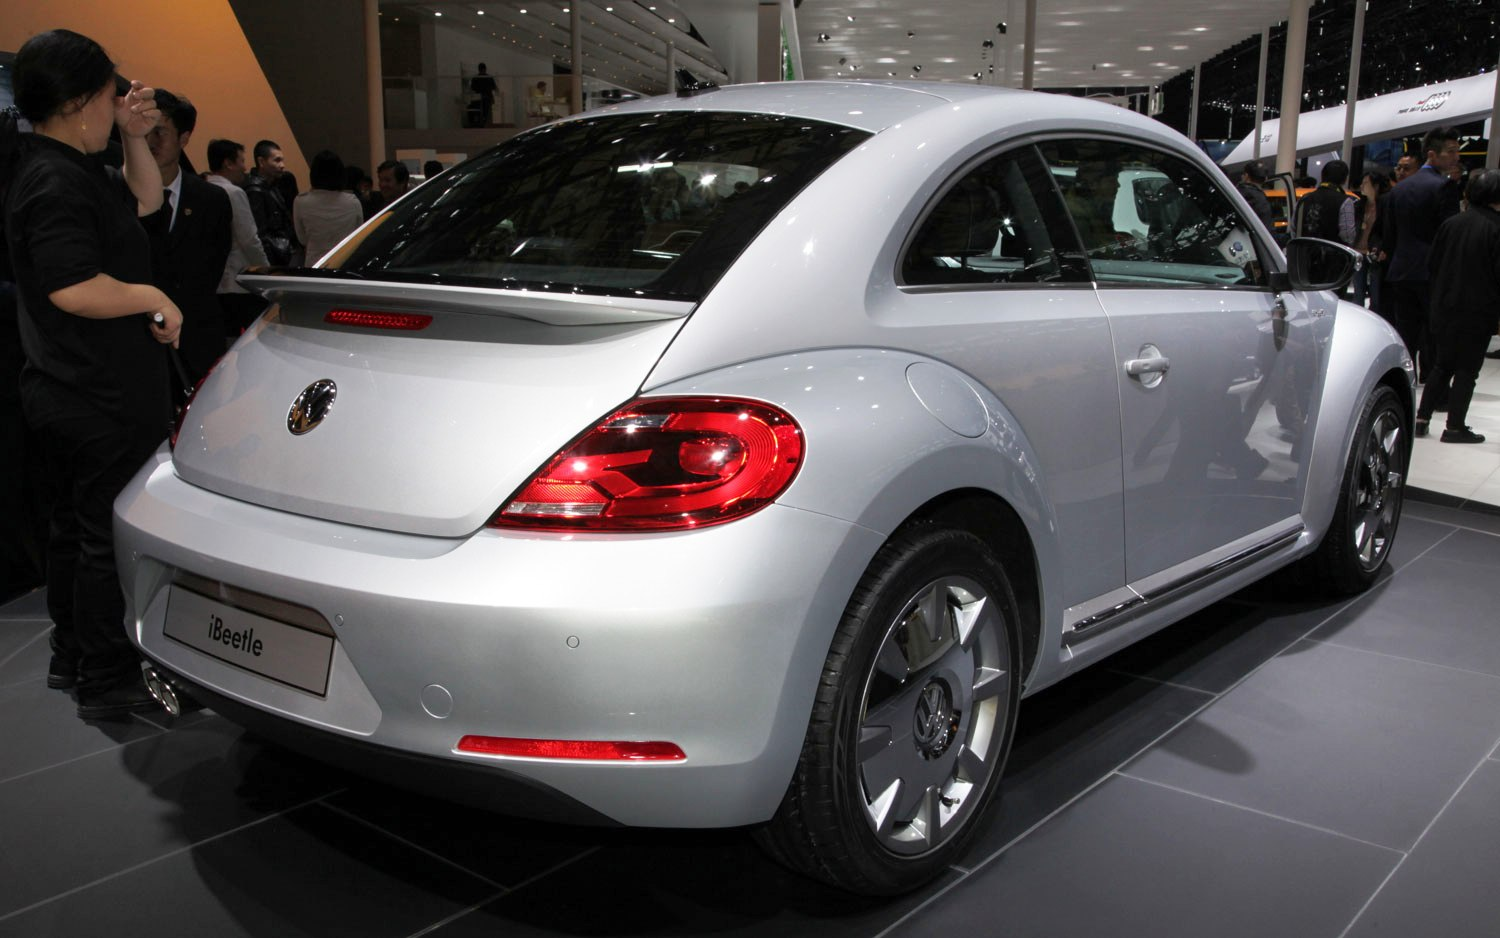 2014 Volkswagen IBeetle At Shanghai Motor Show (Photo 1 of 6)